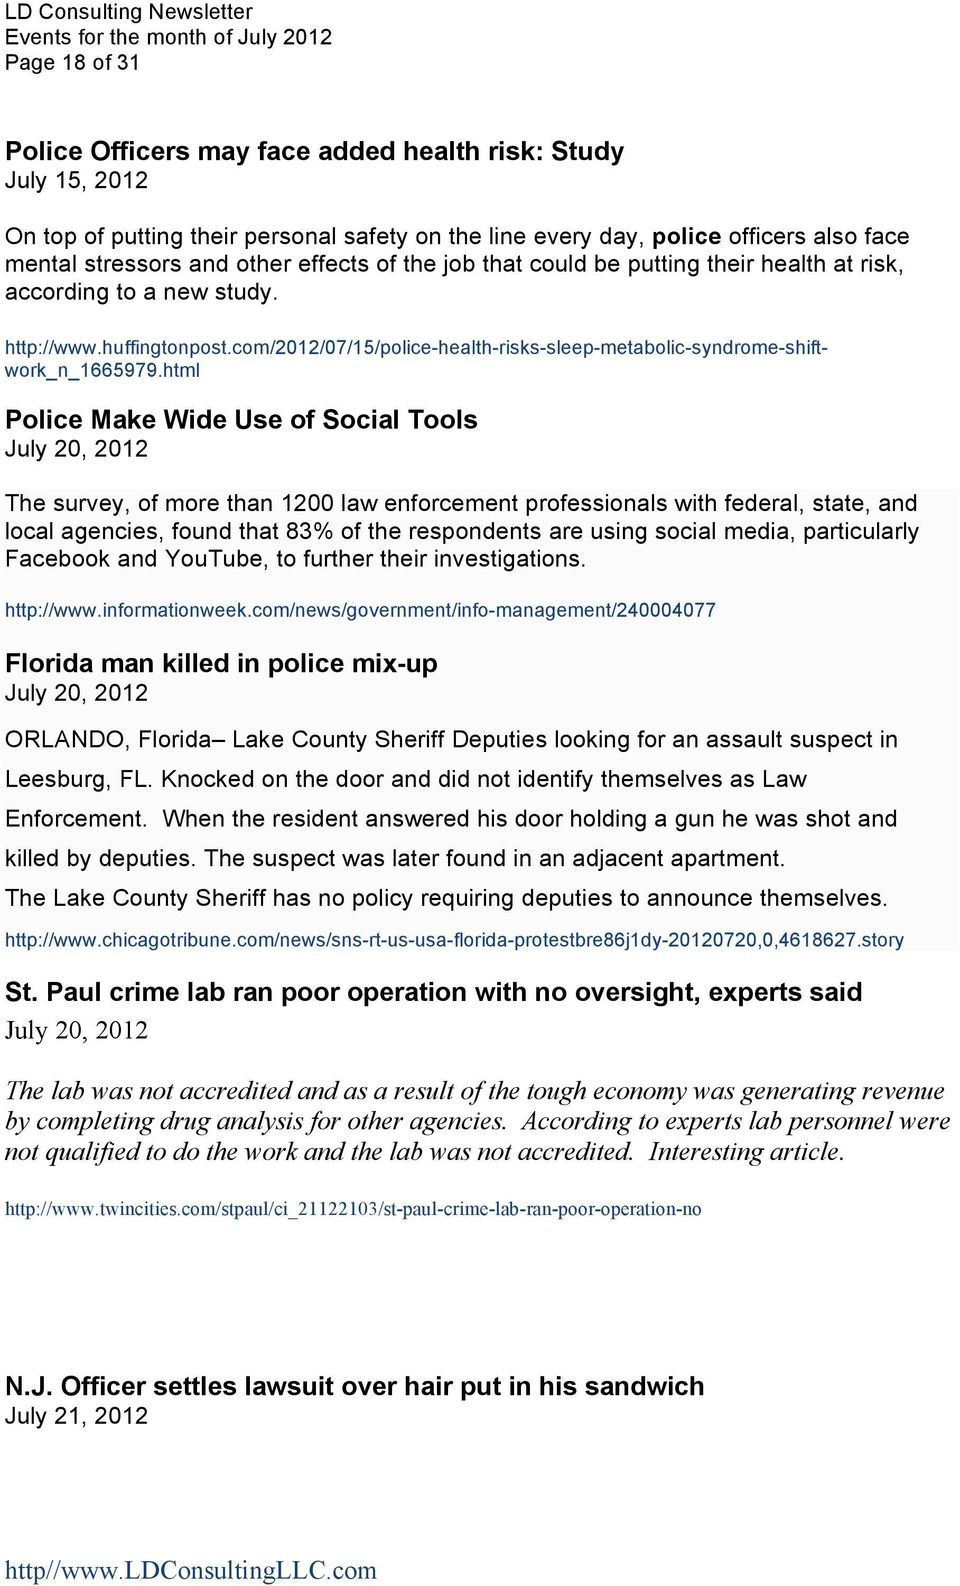 html Police Make Wide Use of Social Tools July 20, 2012 The survey, of more than 1200 law enforcement professionals with federal, state, and local agencies, found that 83% of the respondents are